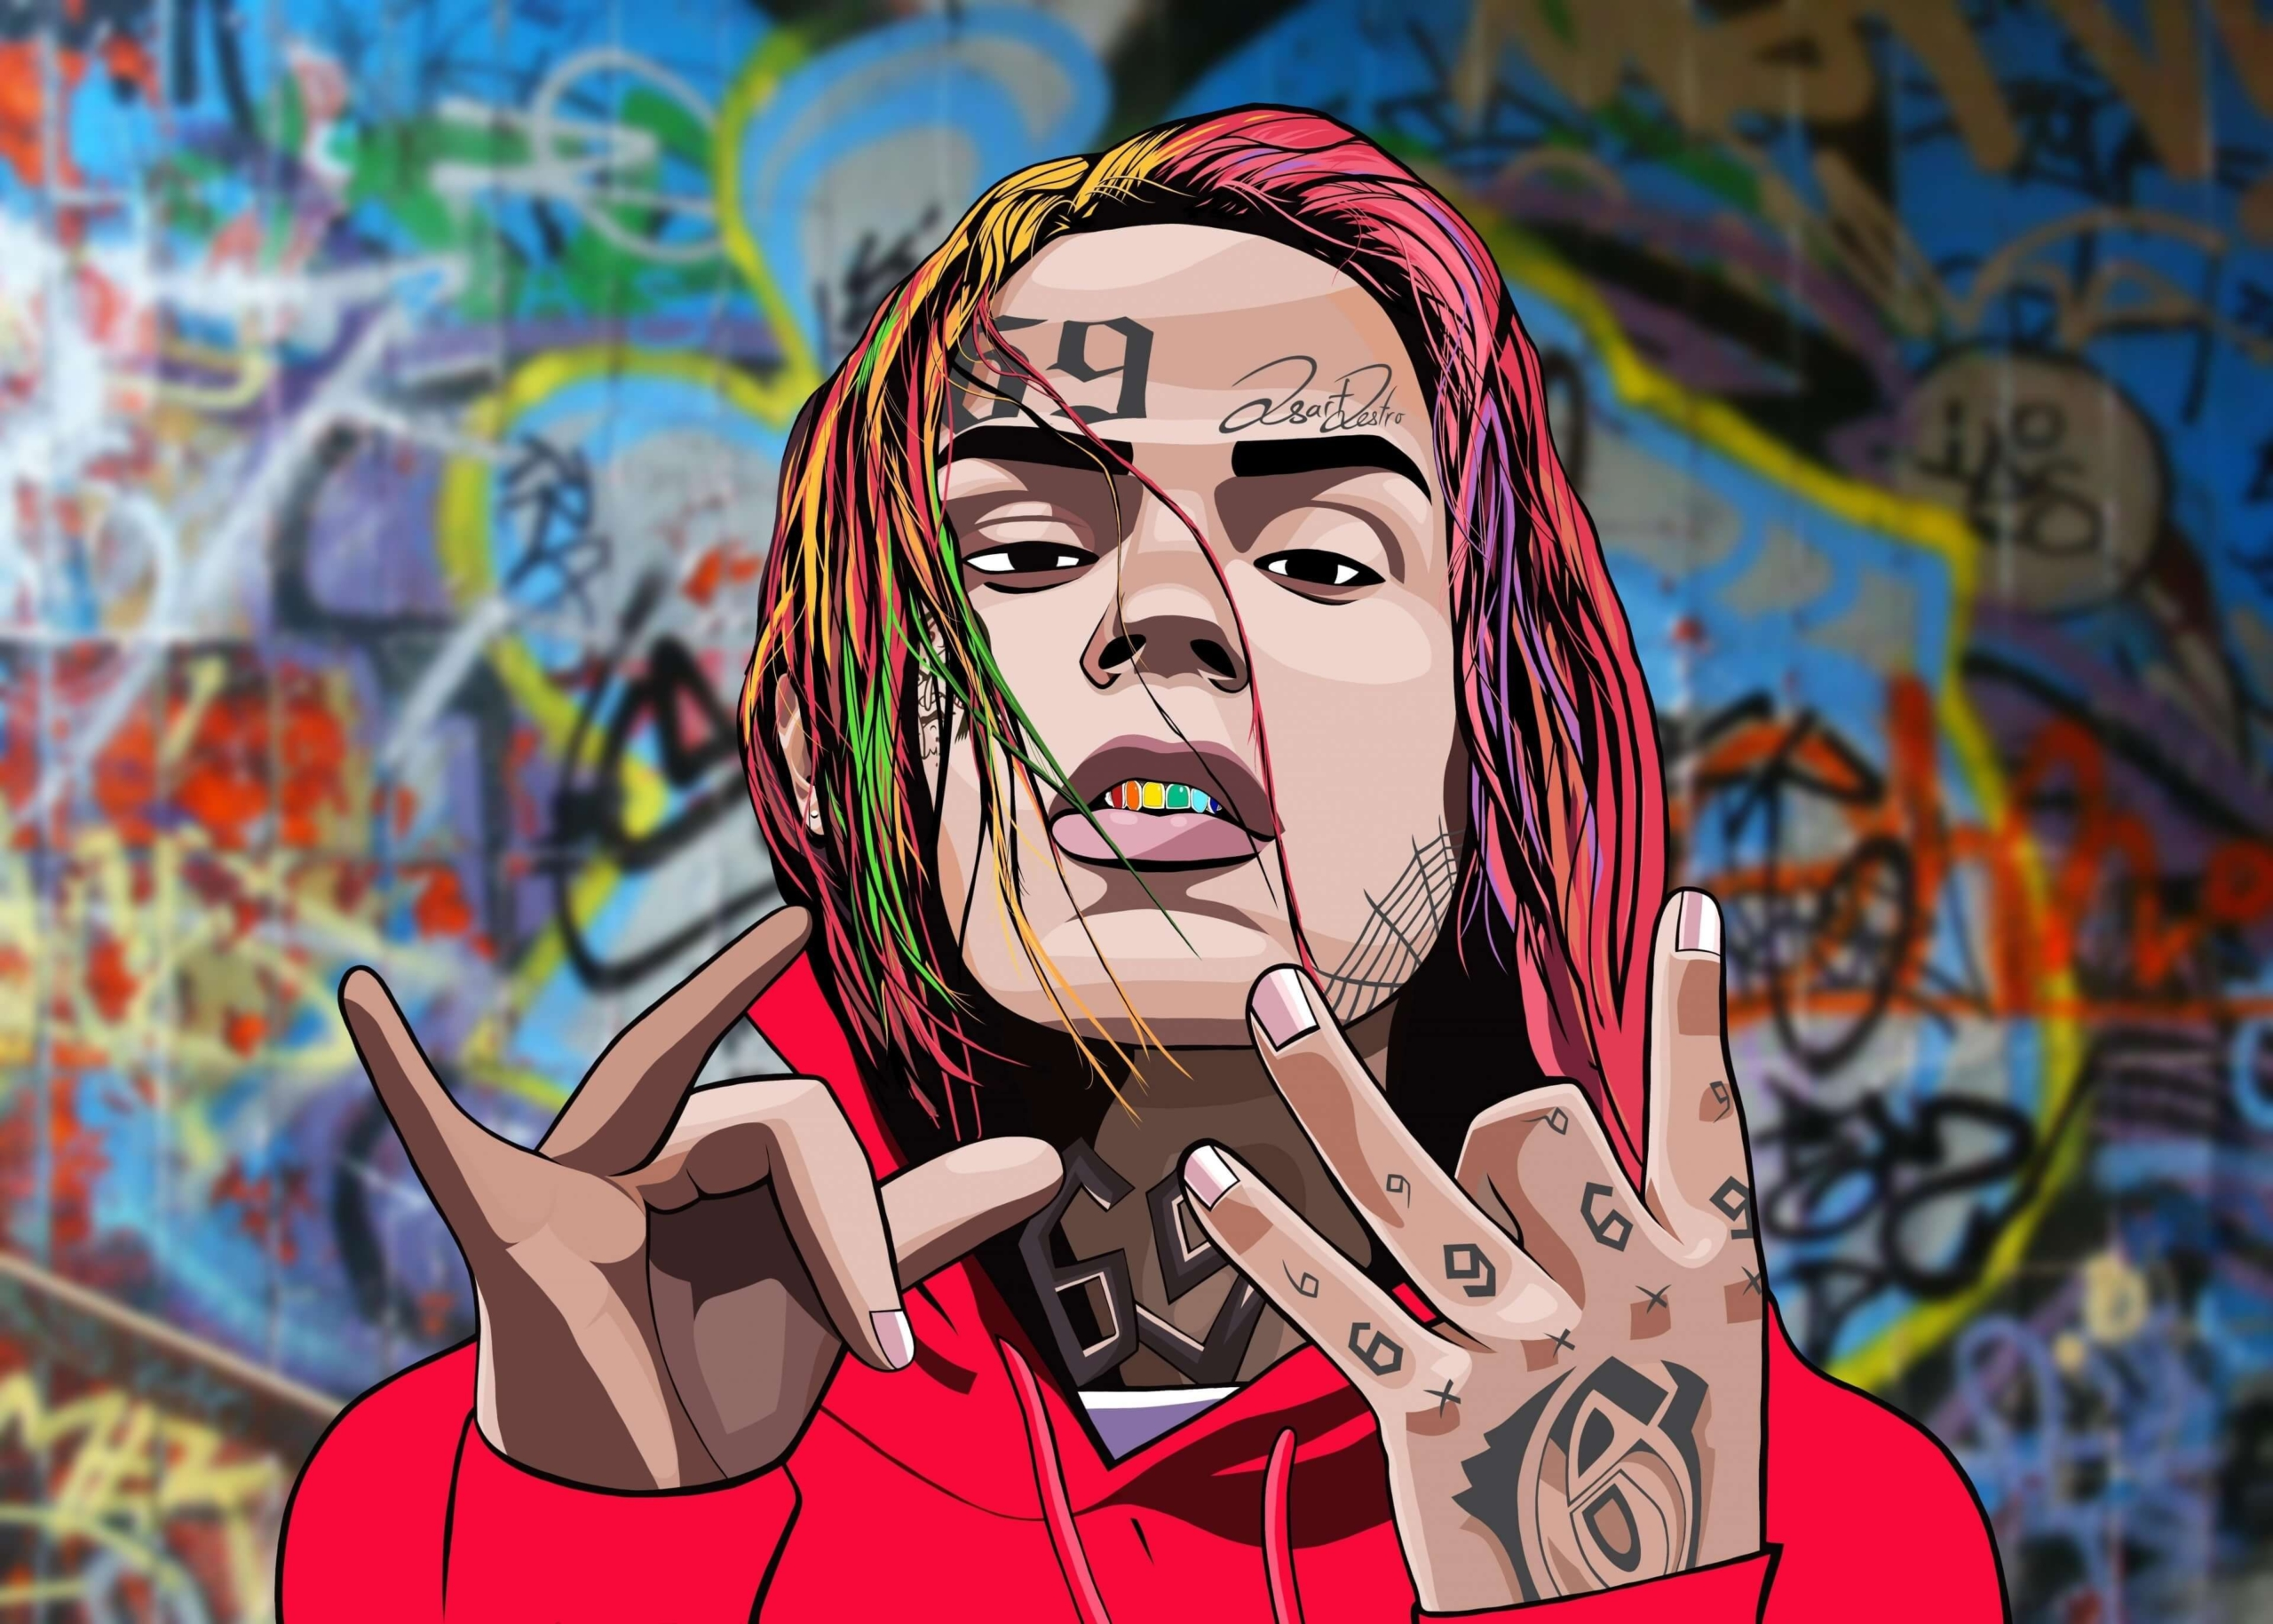 6ix9ine wallpaper – Why it is a Good background For Your Computer